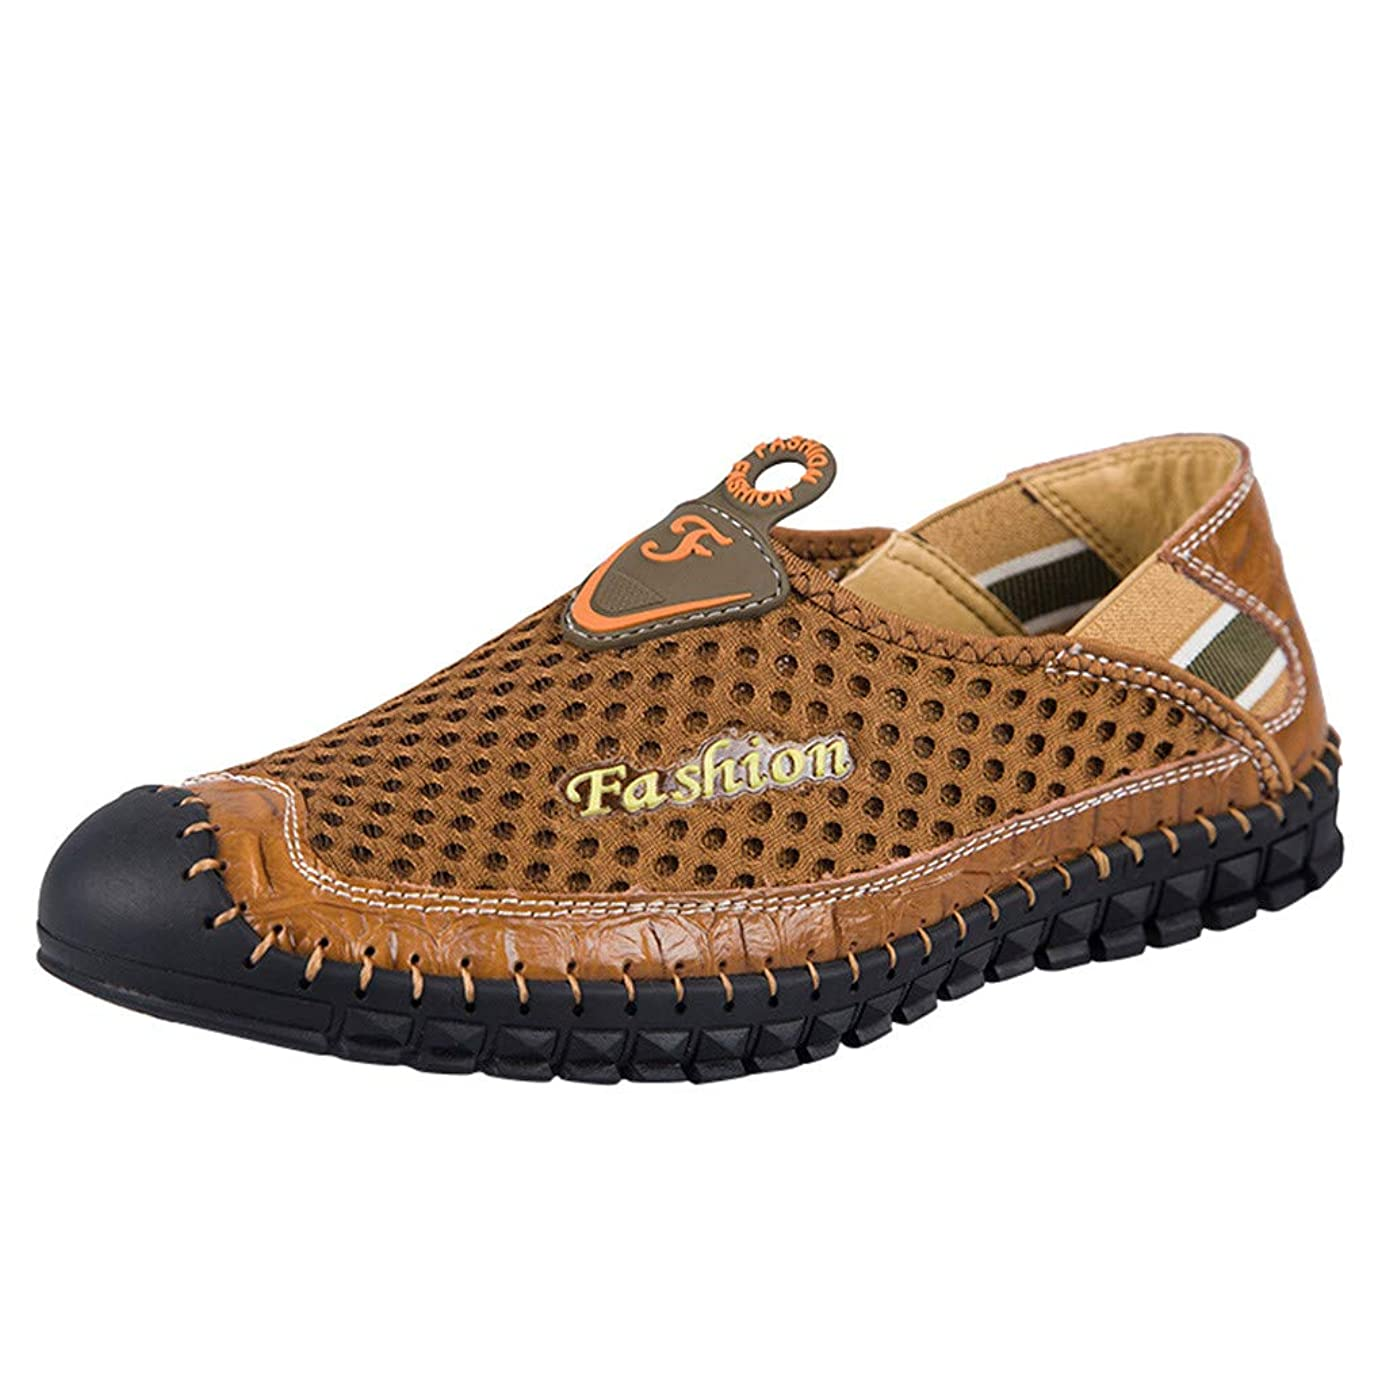 Mens Loafers Sneakers,Mosunx Athletic Boys Slip On Mesh Breathable Lightweight Outdoor Plus US Size 6.5 to 10.5 Casual Shoes (7, Brown)